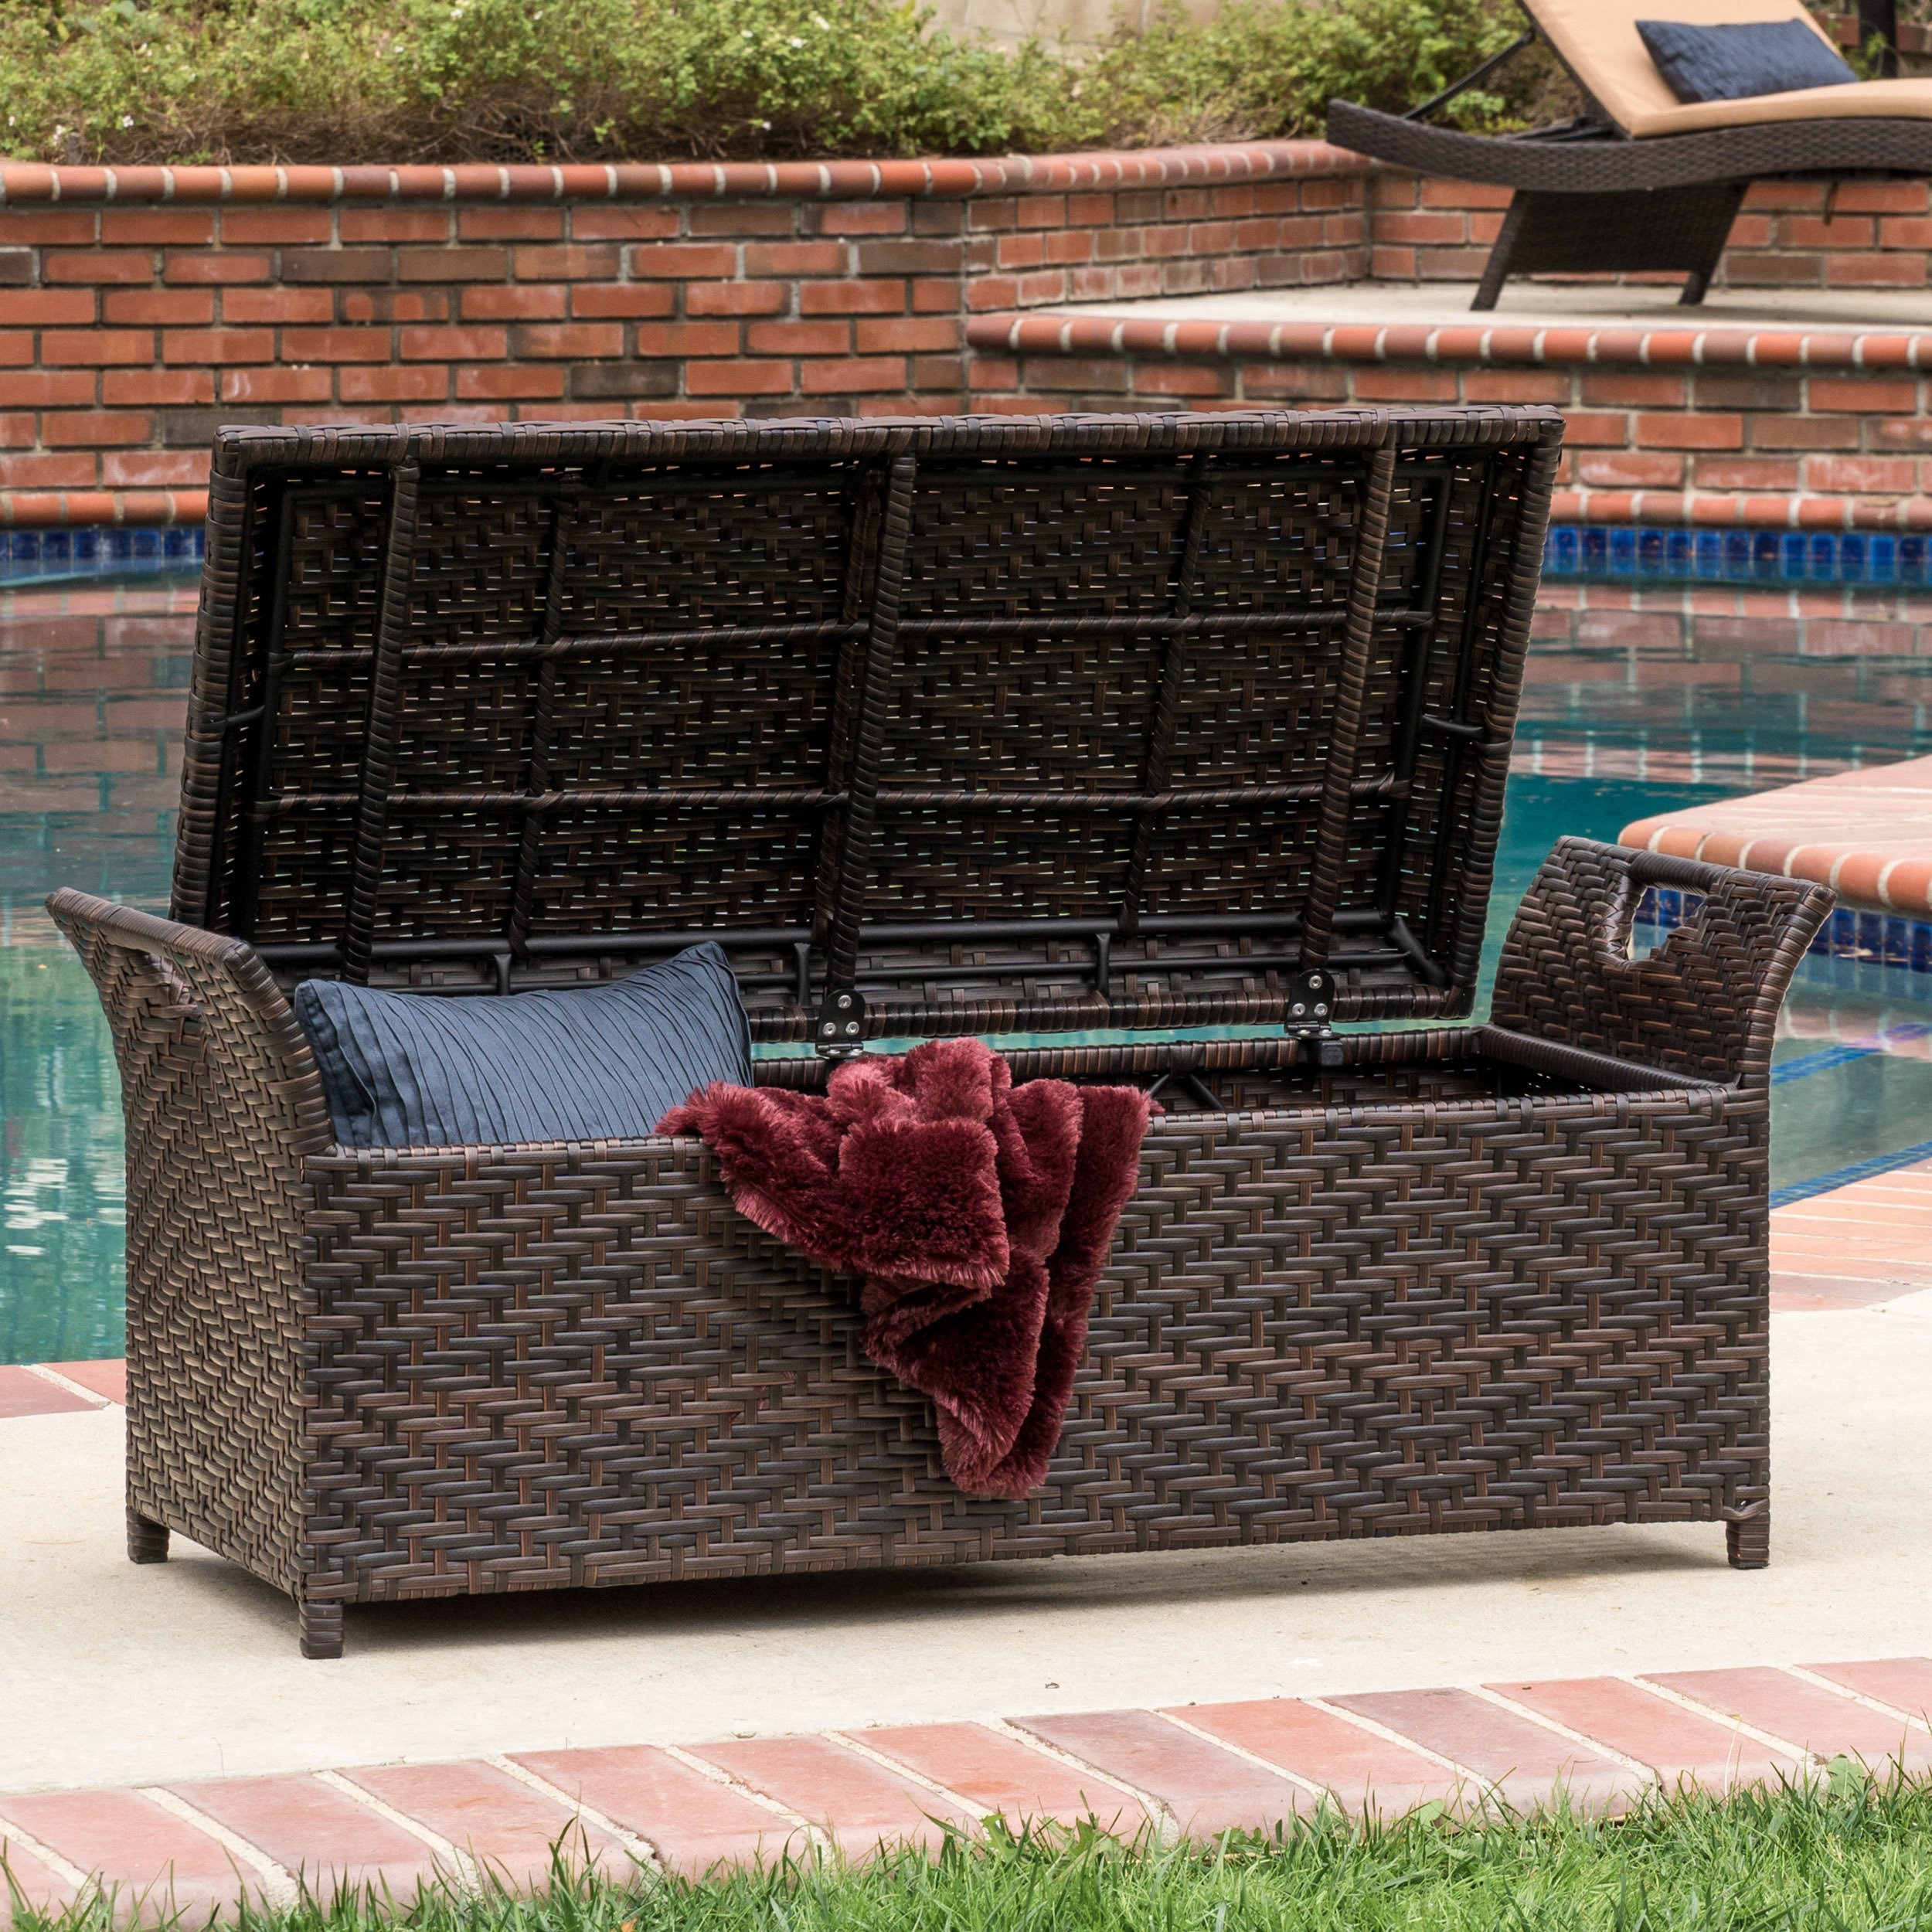 wing outdoor wicker storage bench christopher knight home accent patio table dale tiffany dragonfly lamp shade collapsible trestle wall unit furniture plexi coffee over the couch